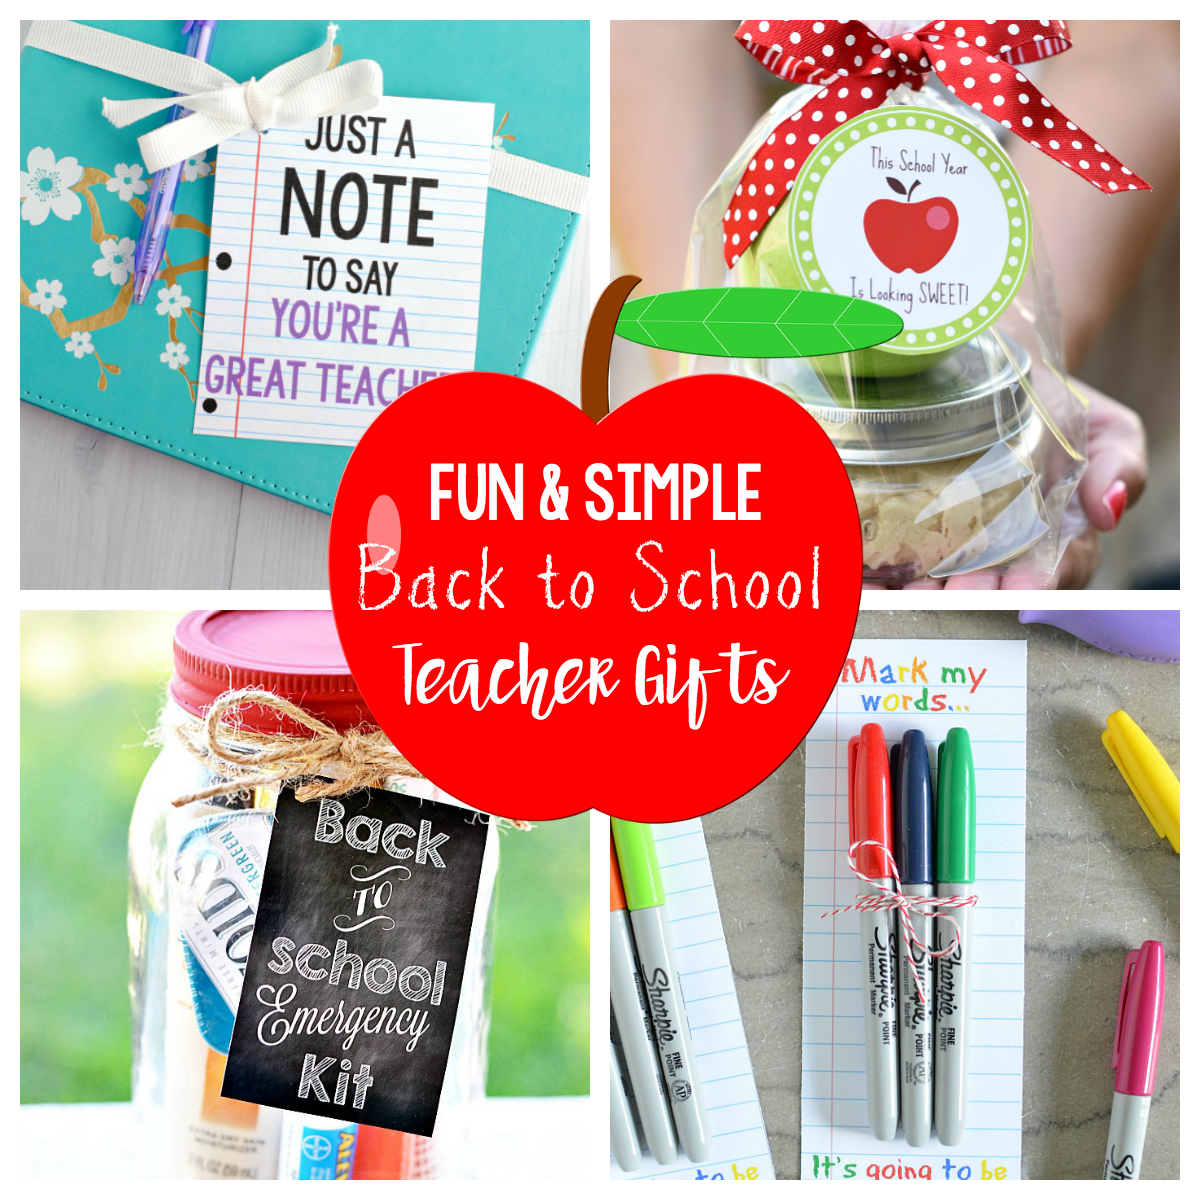 Fun and Simple Back to School Teacher Gifts